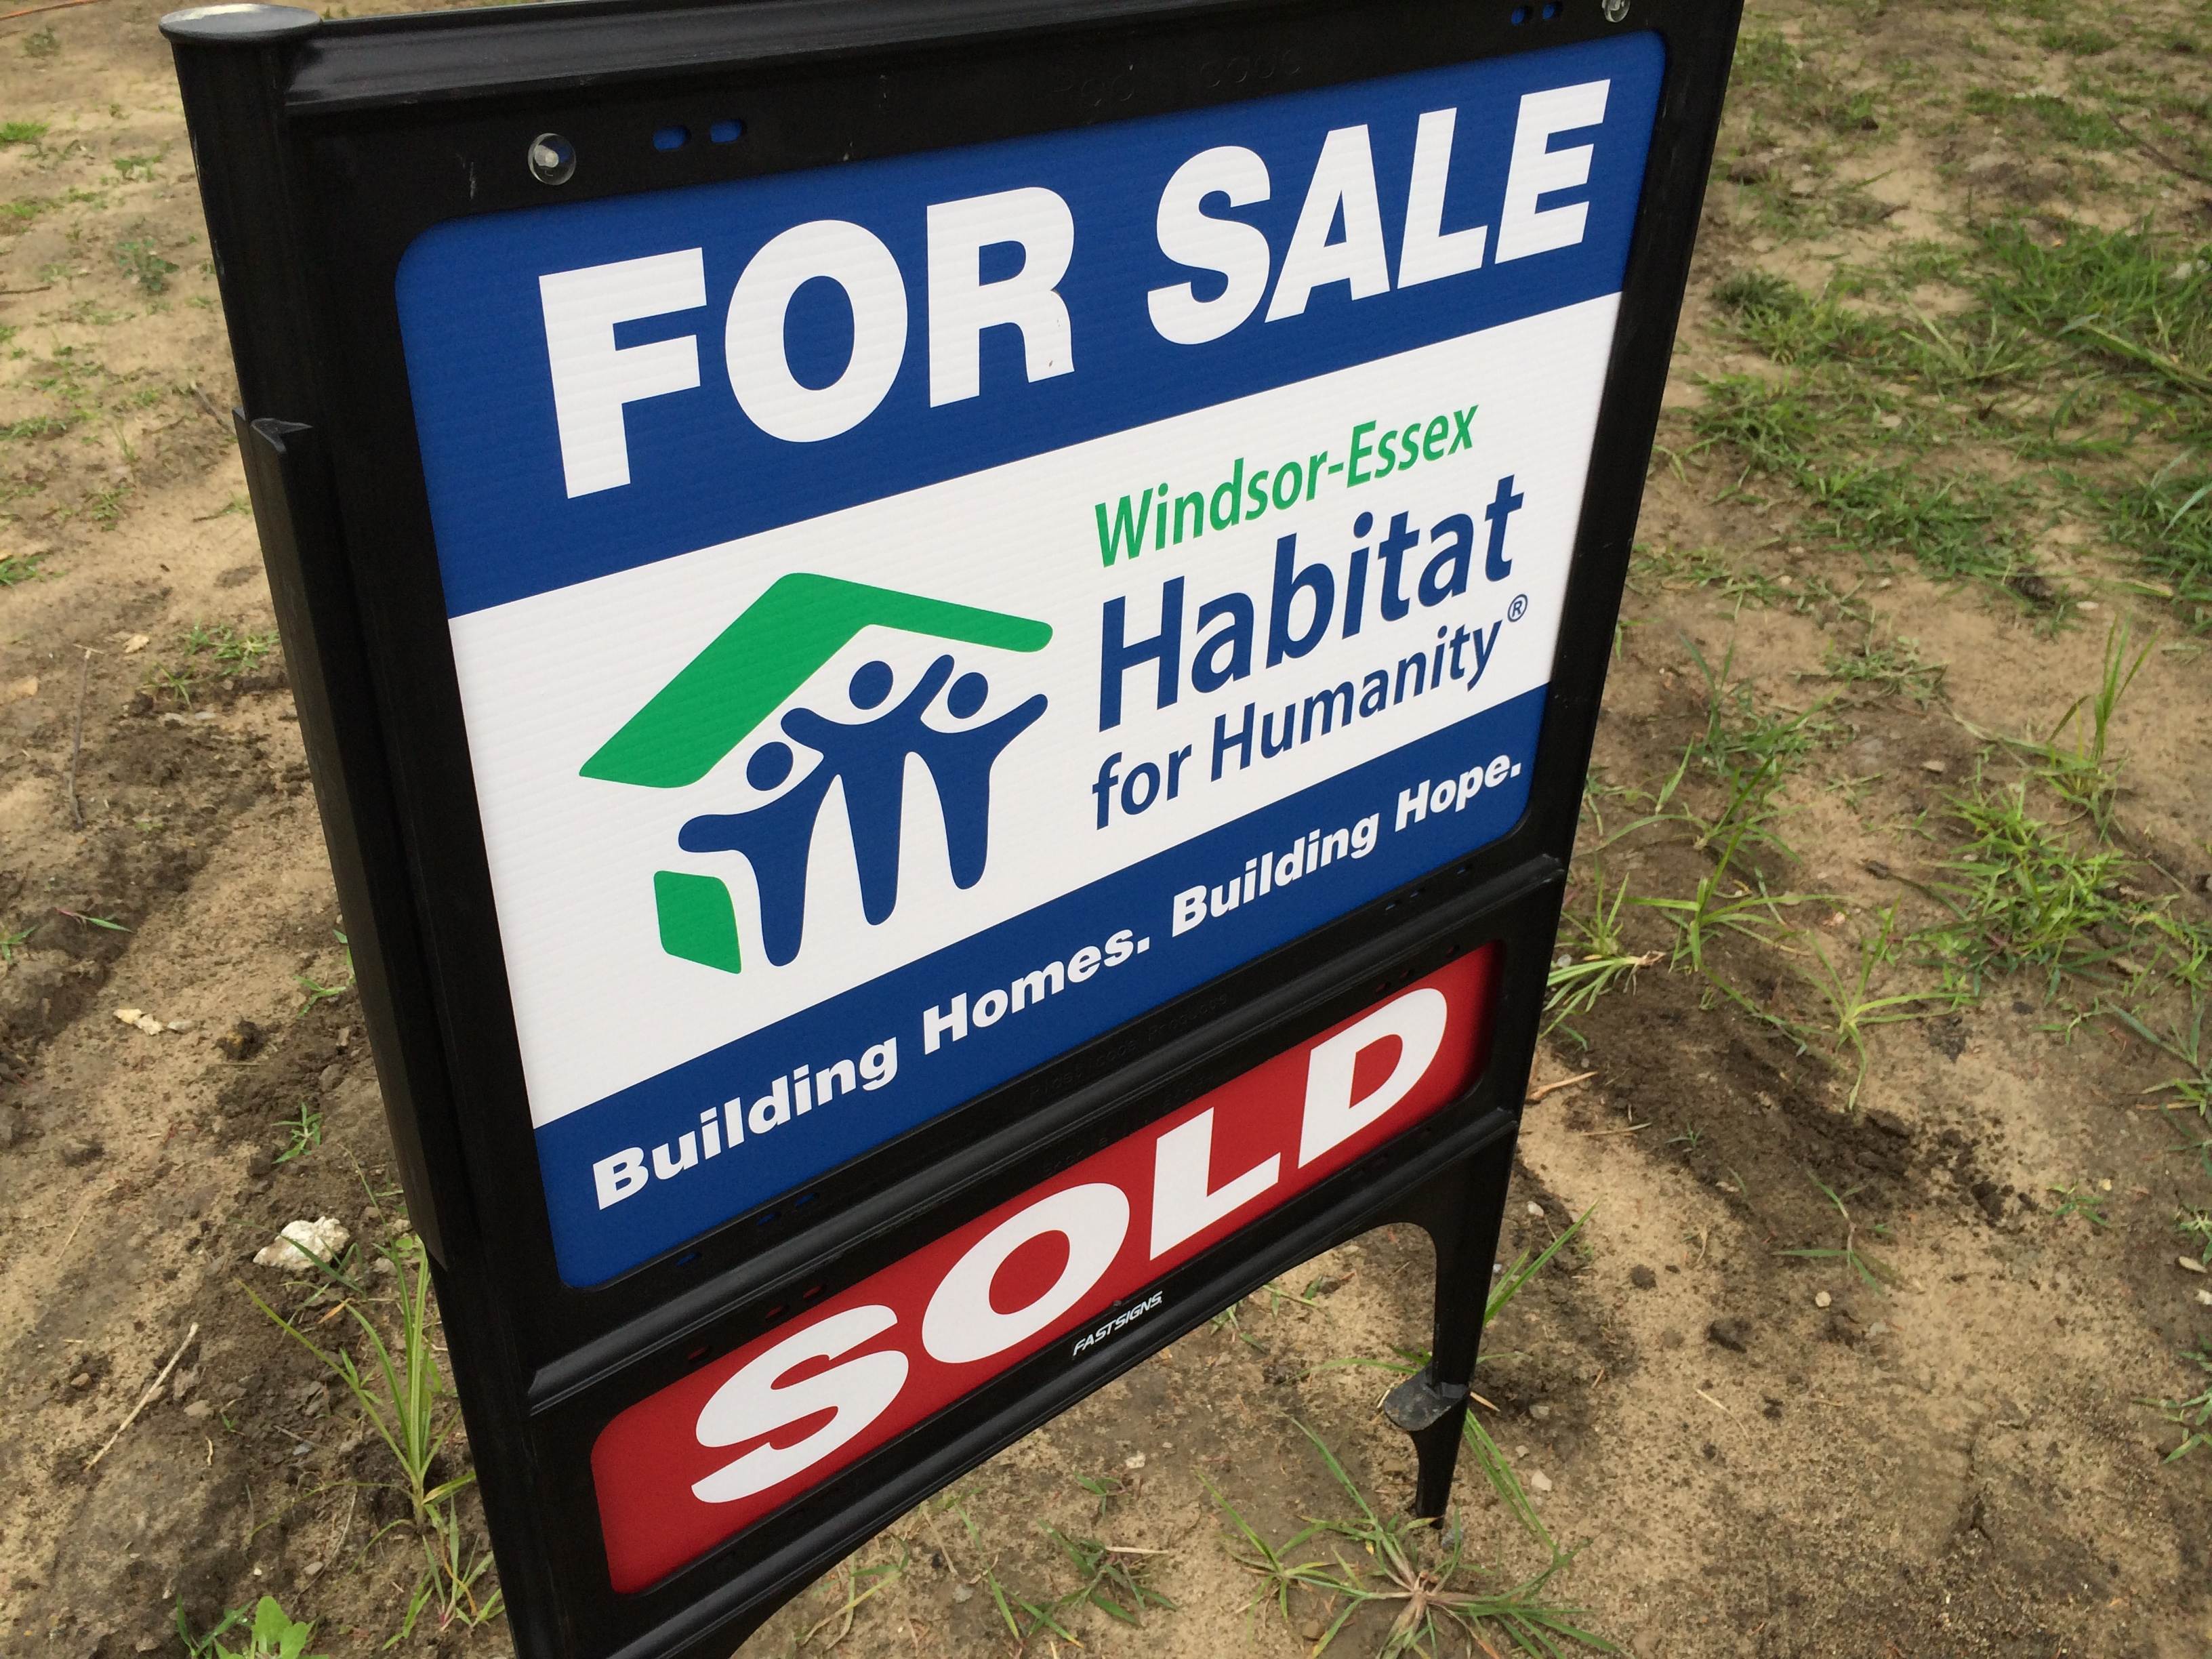 Windsor-Essex Habitat for Humanity sign planted outside a home on Armanda St. in Windsor on July 19, 2014. (Photo by Ricardo Veneza)